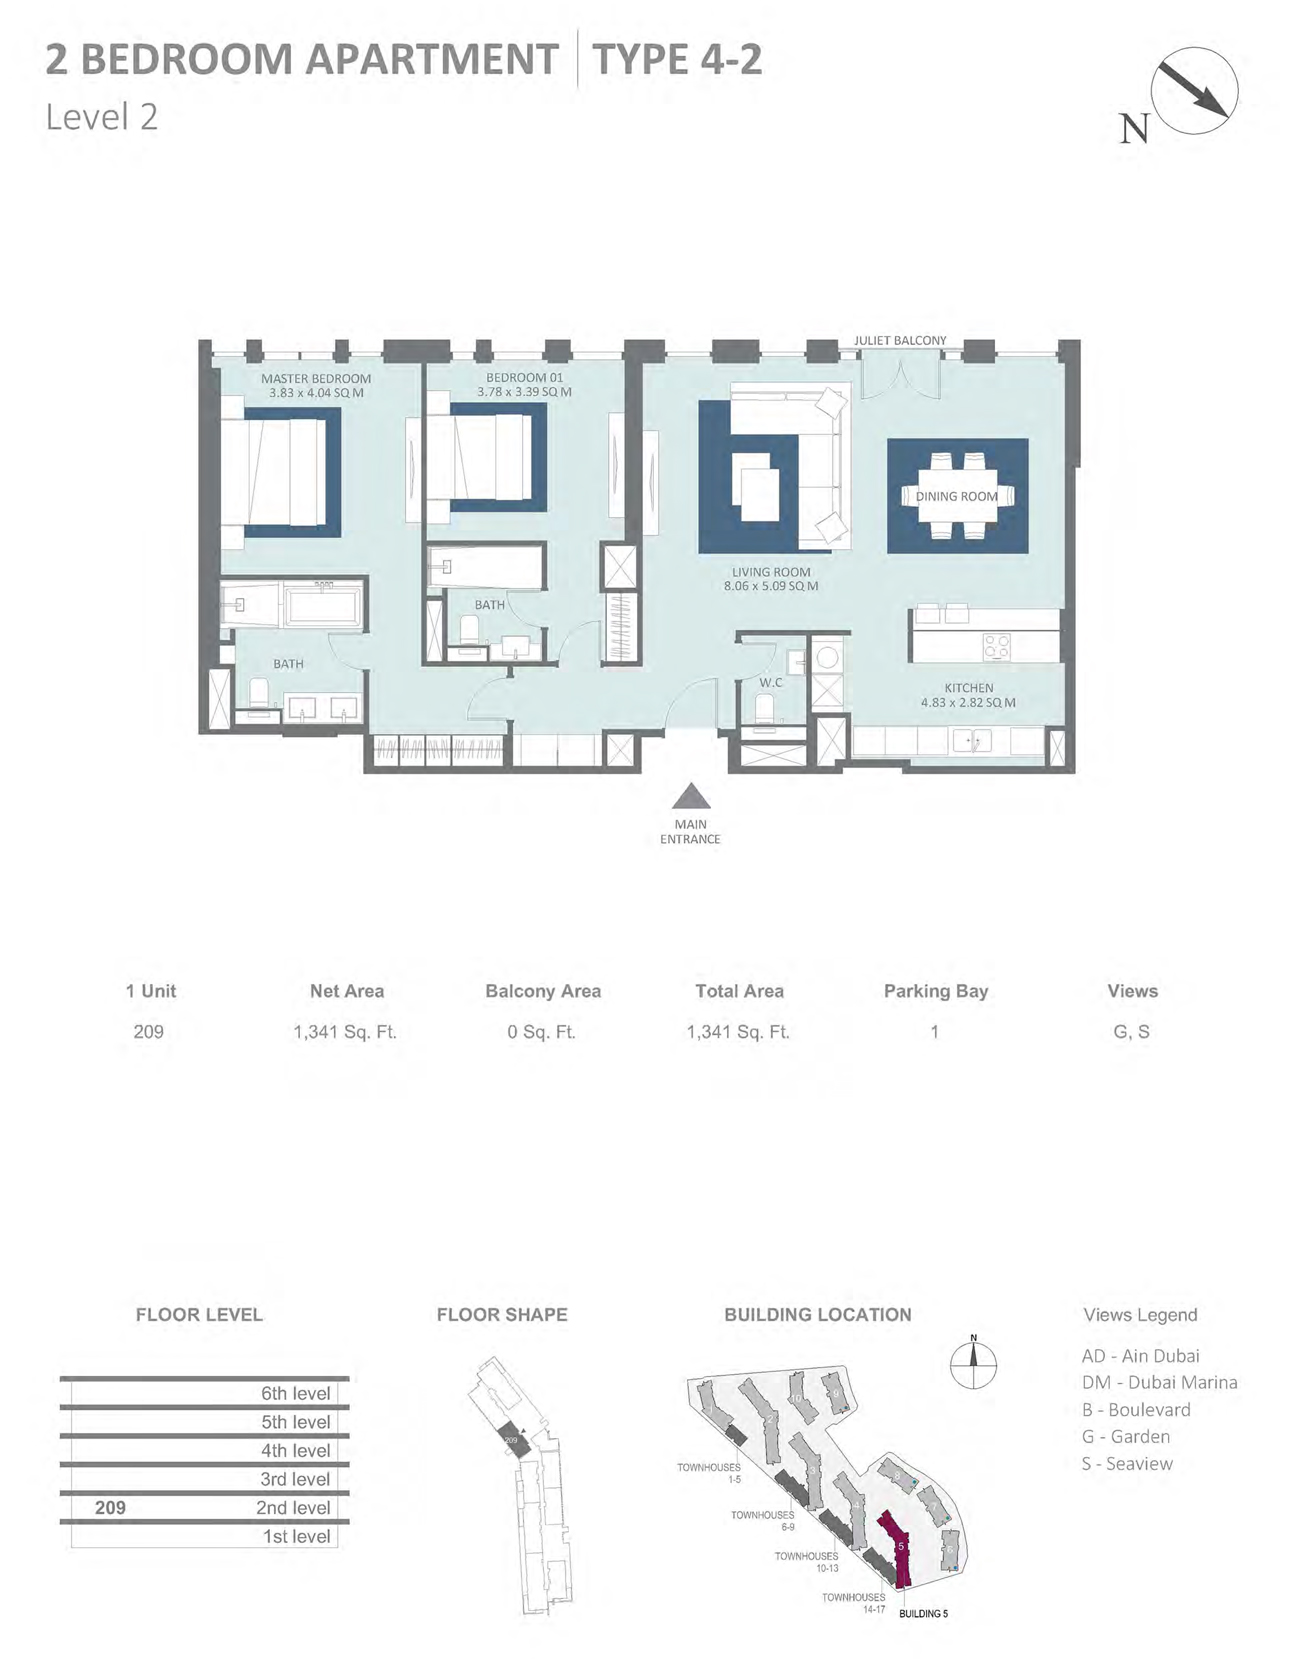 Building 5 - 2 Bedroom Type 4-2 Level 2 , Size 1341    sq. ft.